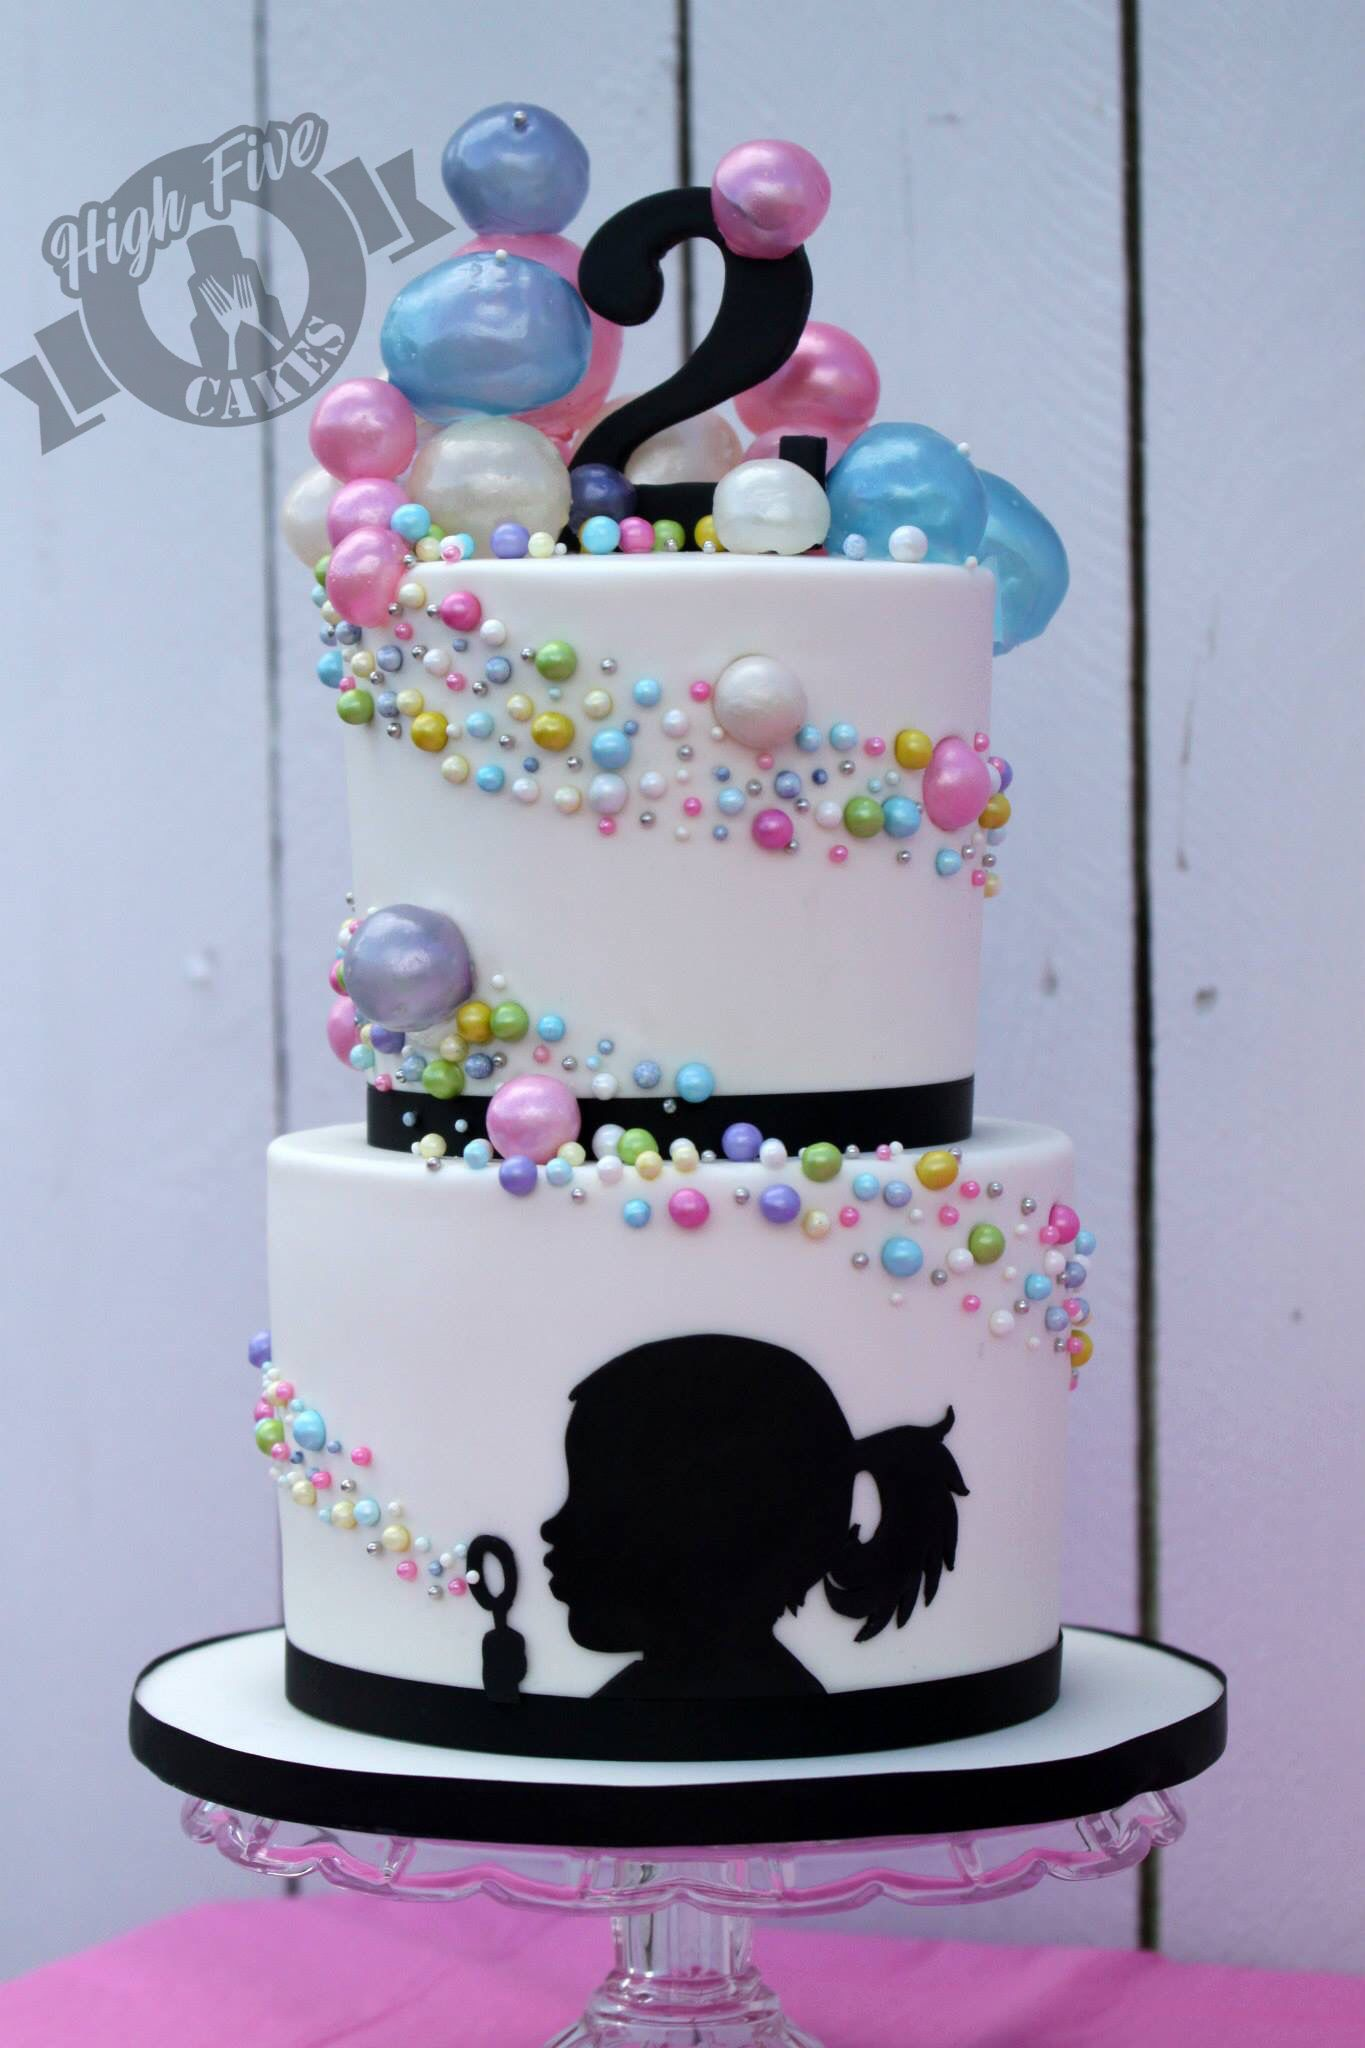 Bubble silhouette cake by High Five Cakes  www.facebook.com/highfivecakeco